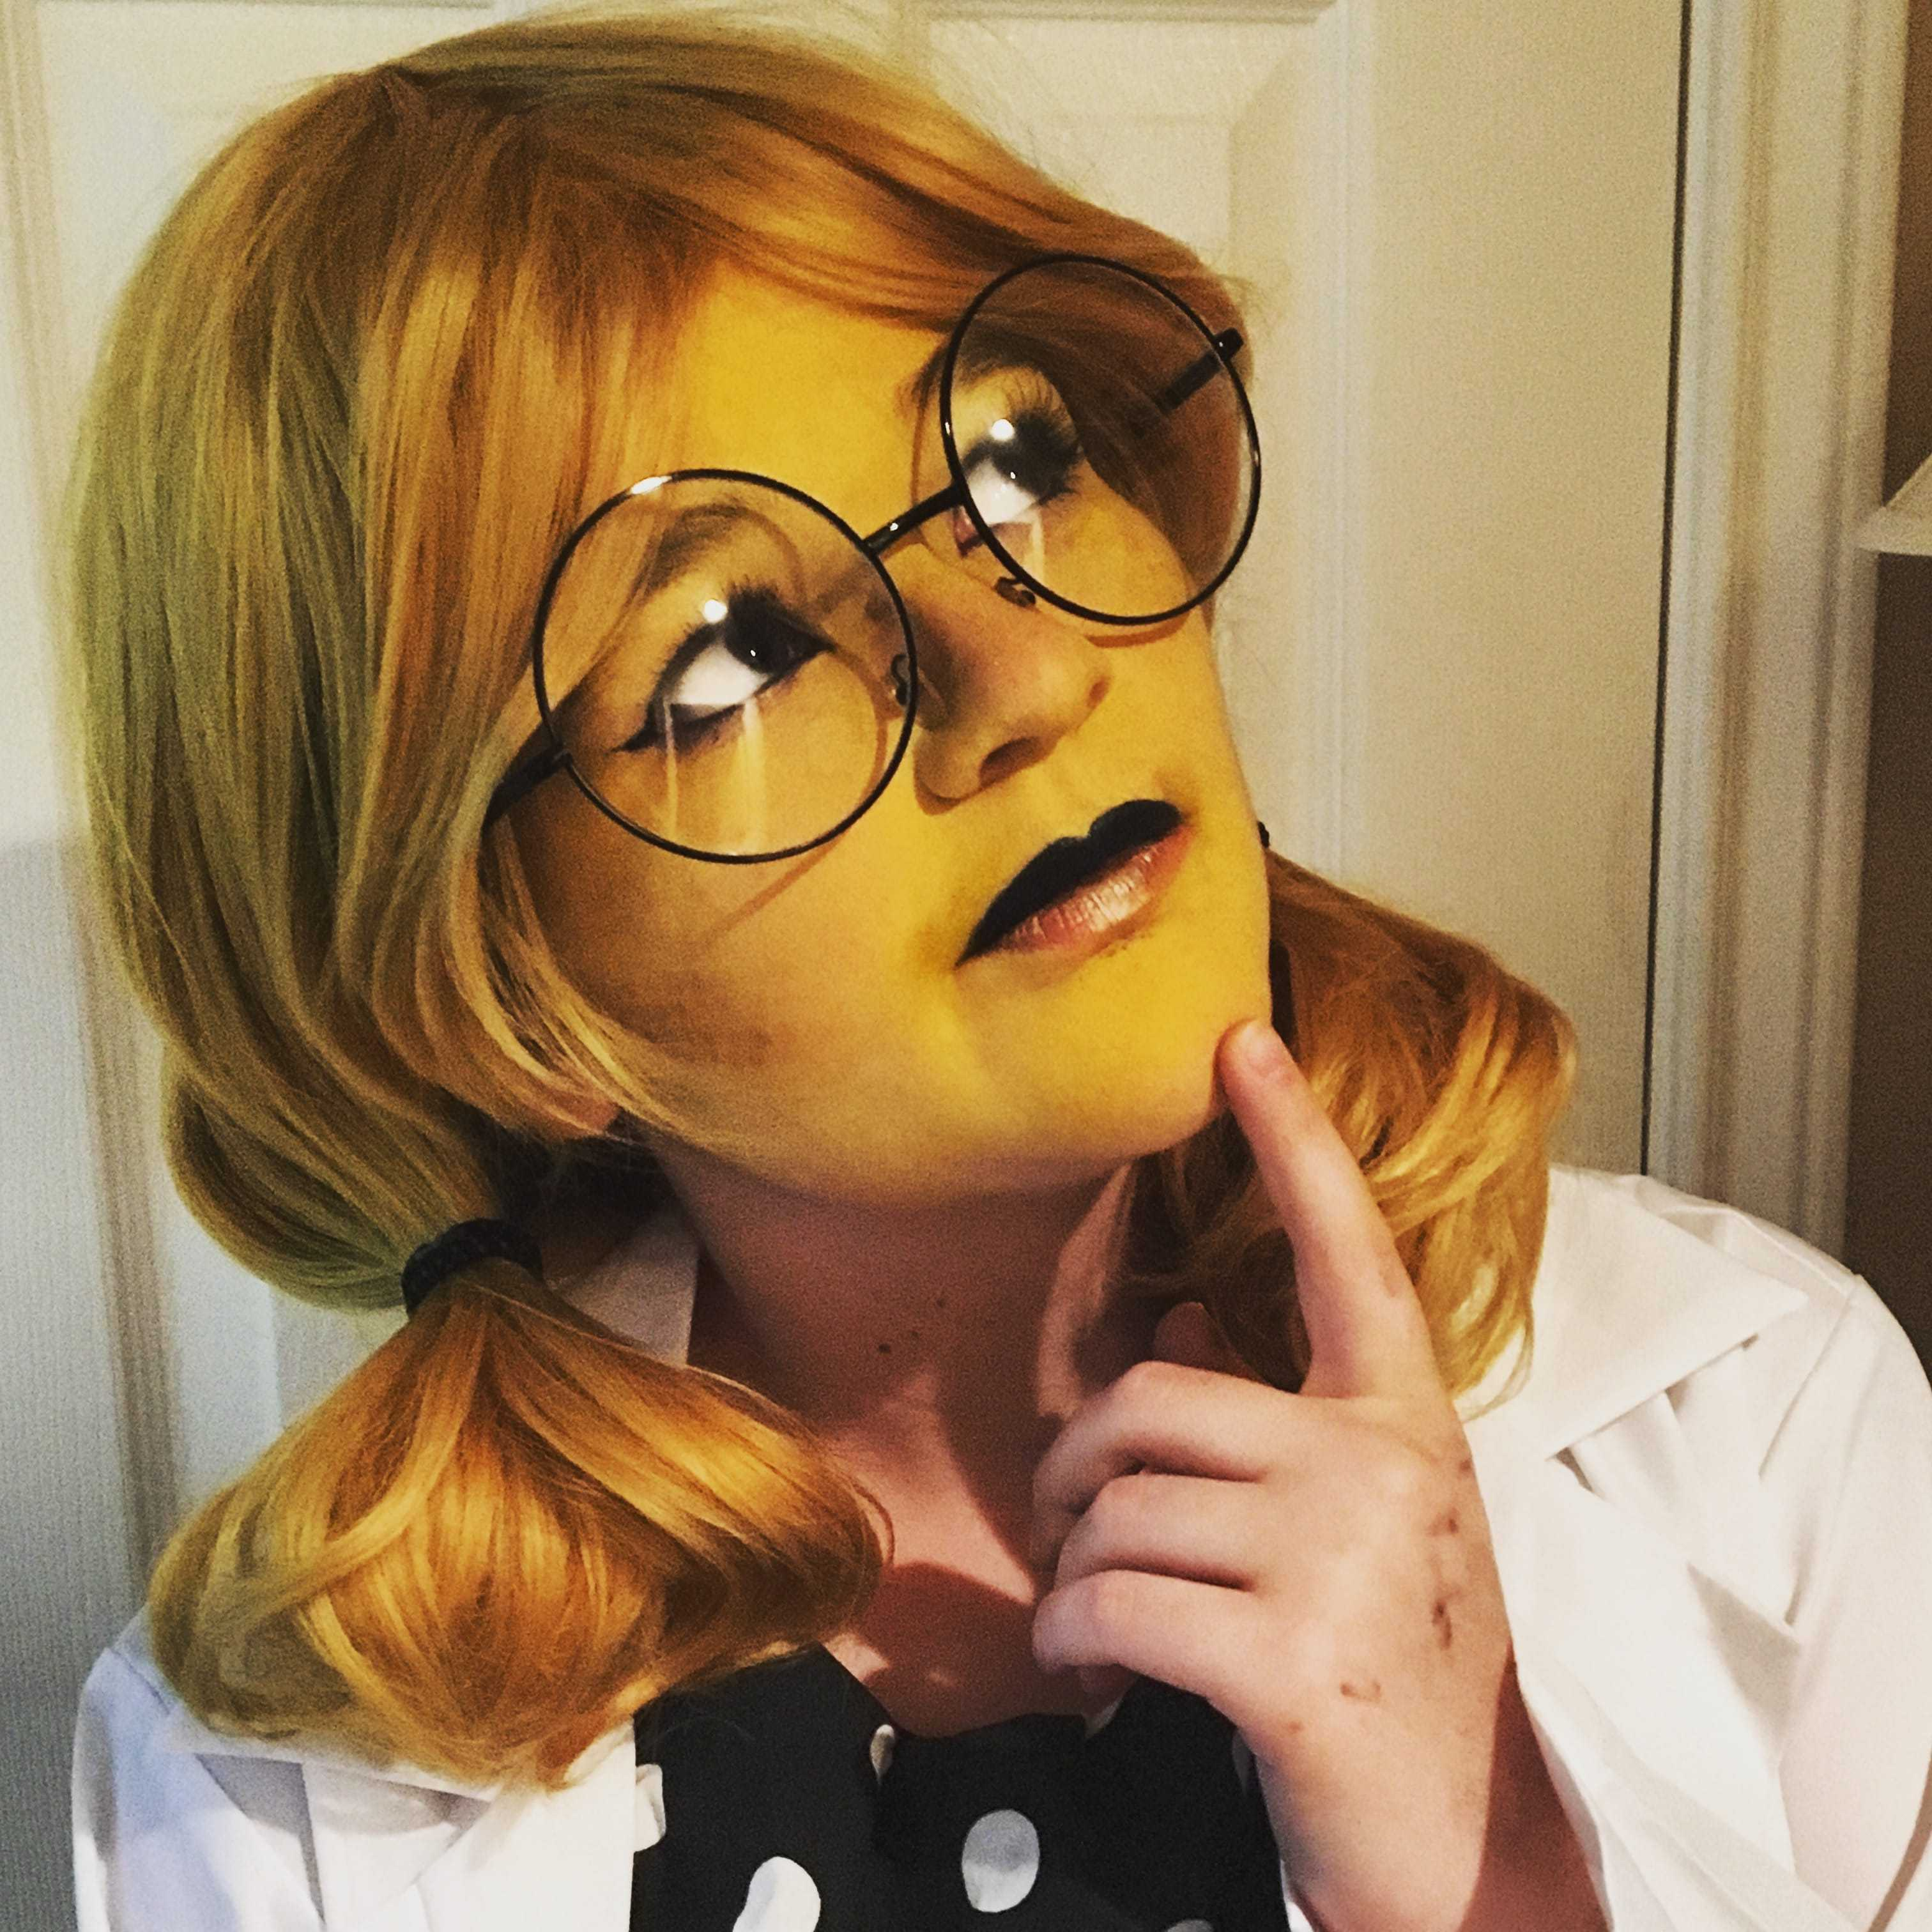 Sarah Ray cosplayed as Dr. Alphys from a popular computer game called Undertale.